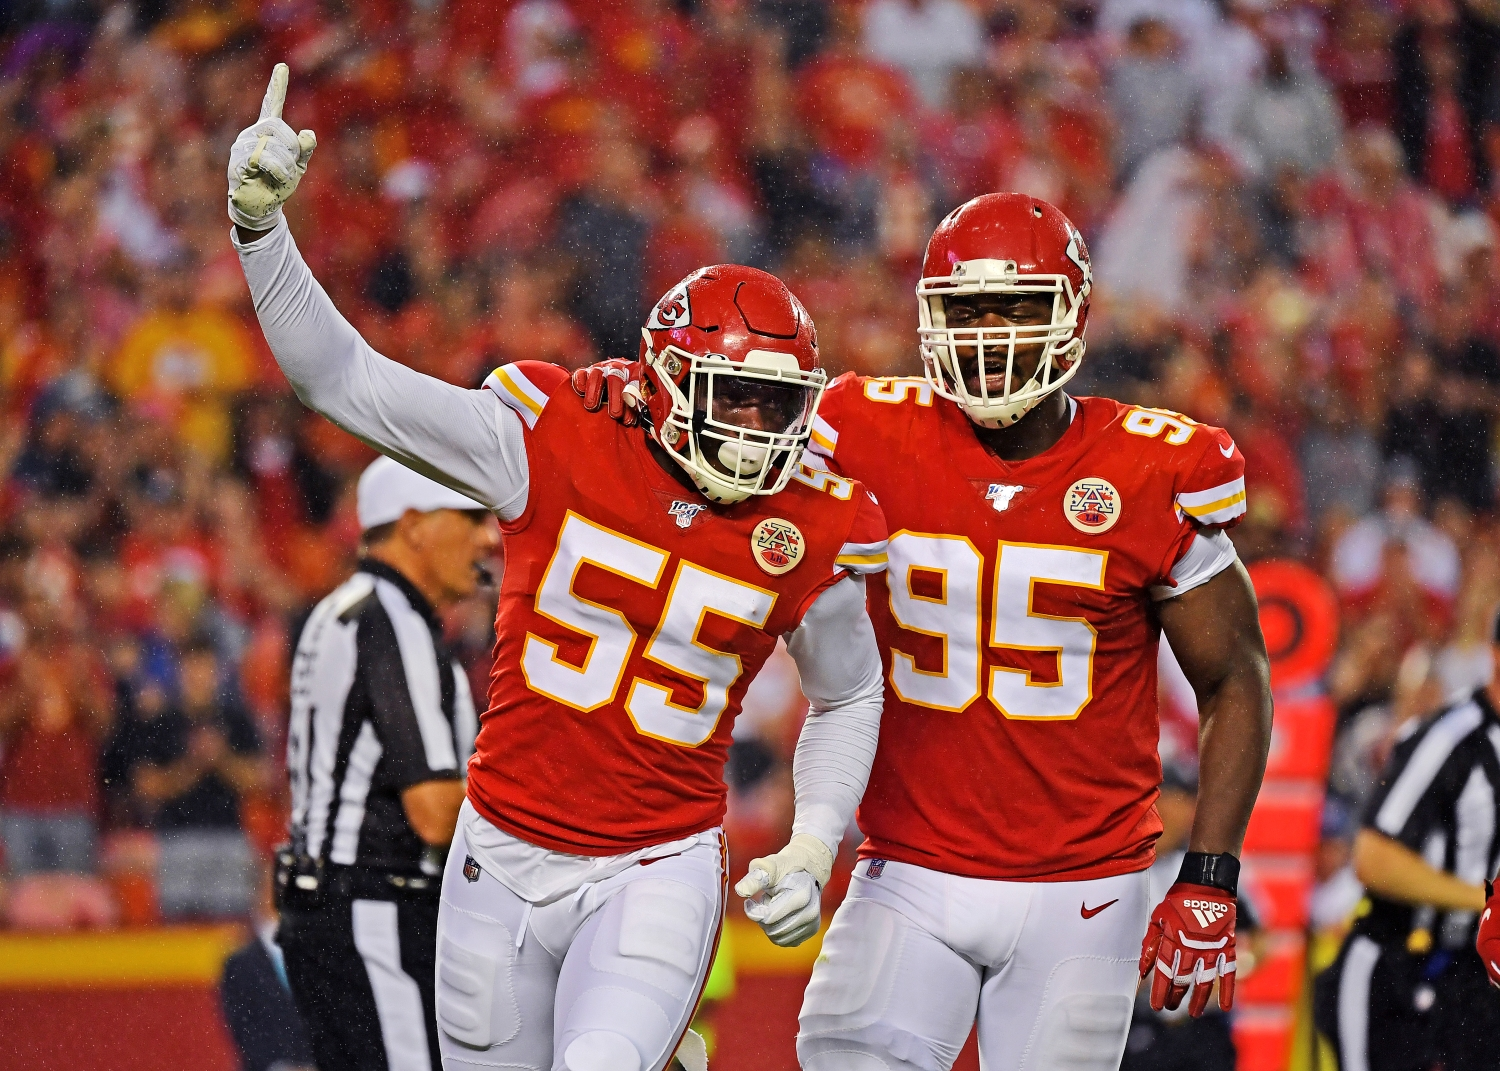 Frank Clark of the Kansas City Chiefs celebrates alongside teammate Chris Jones during a preseason game in 2019.